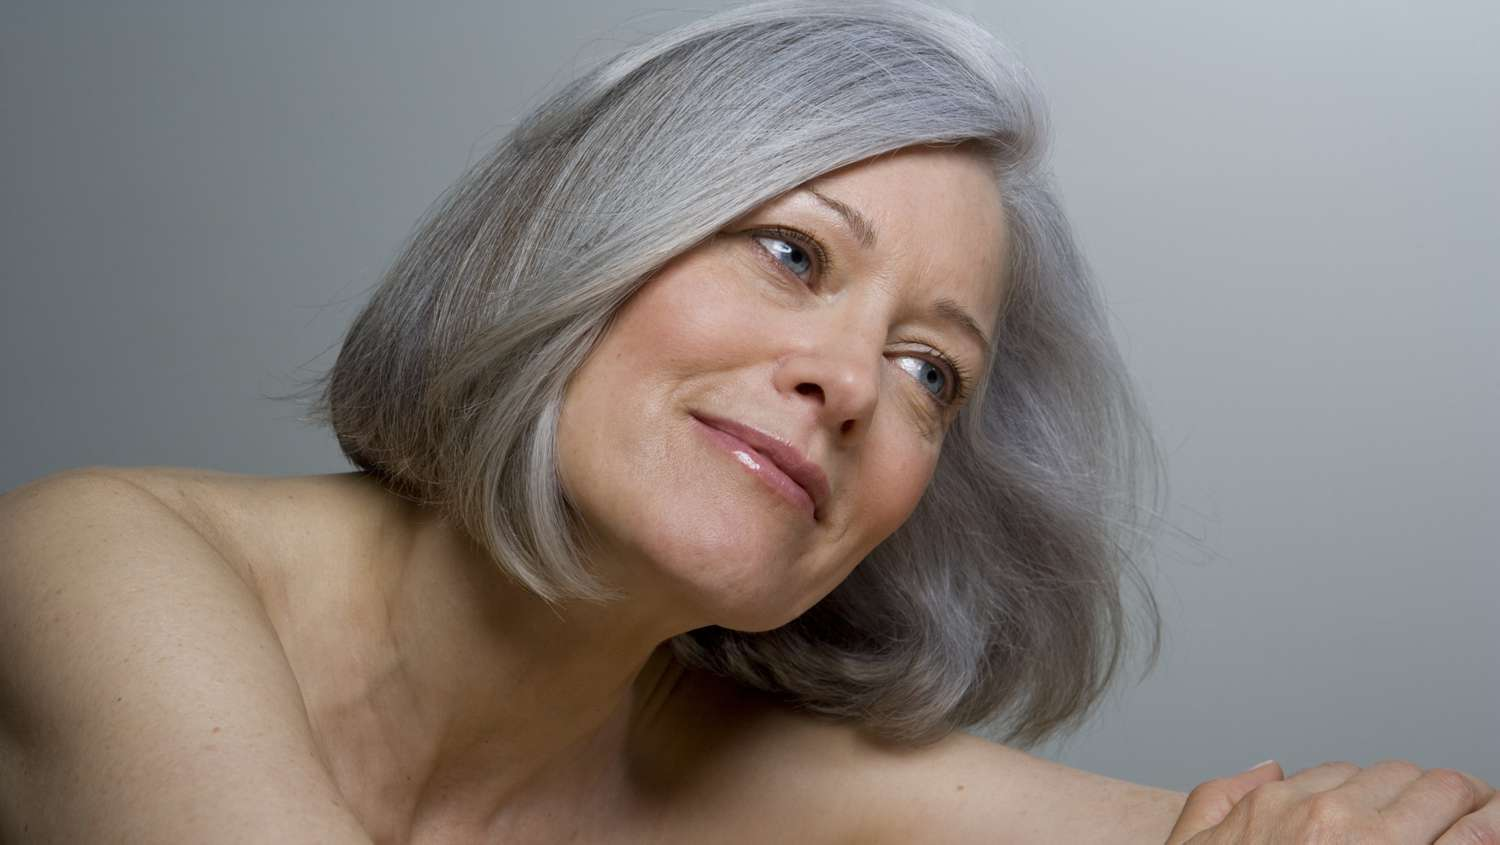 What Is The Best Shampoo For Grey Hair, According To Women